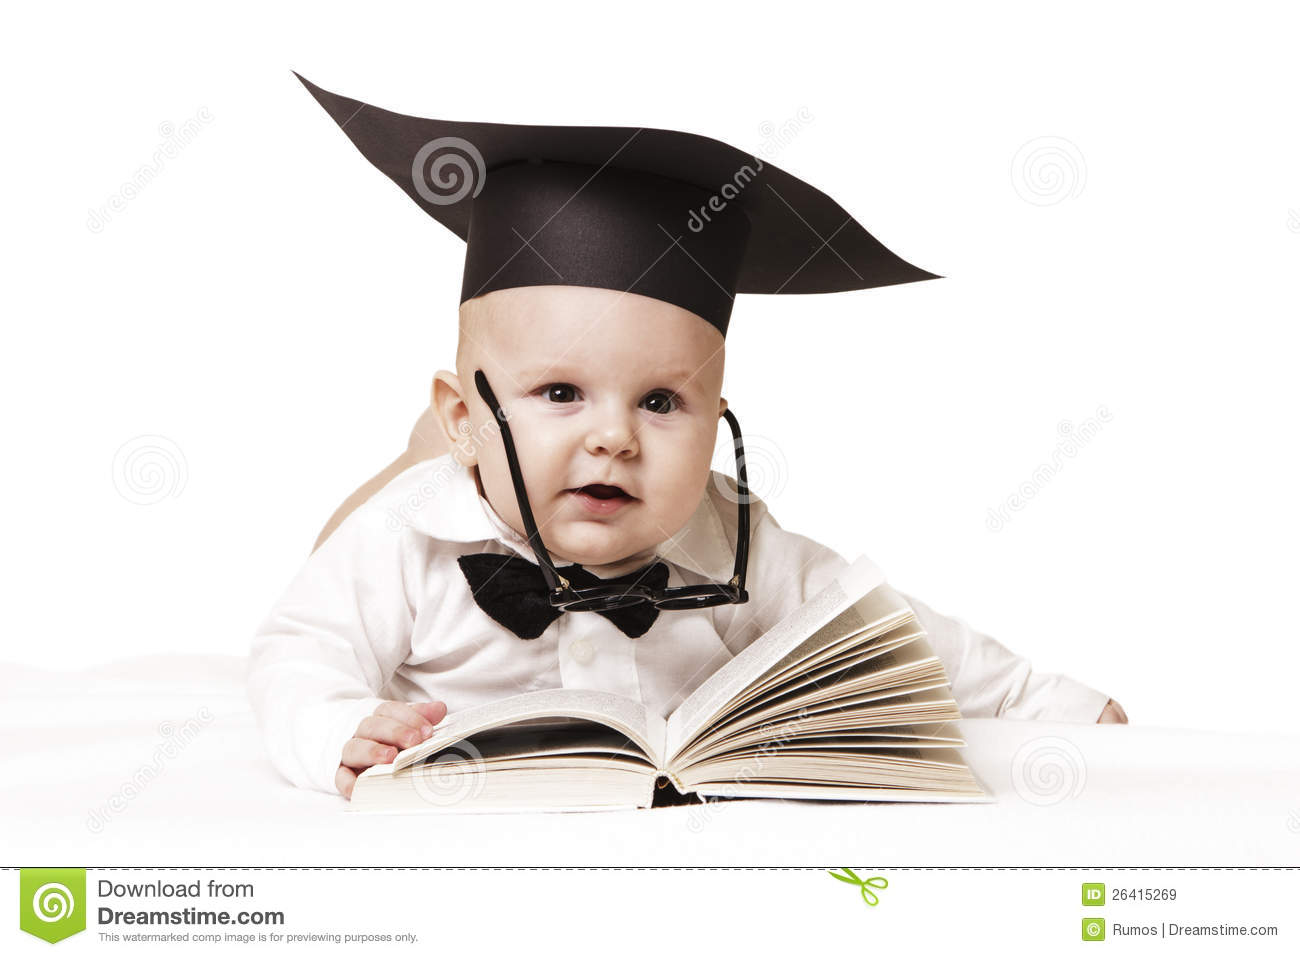 Intelligent Baby Royalty Free Stock Images - Image: 26415269